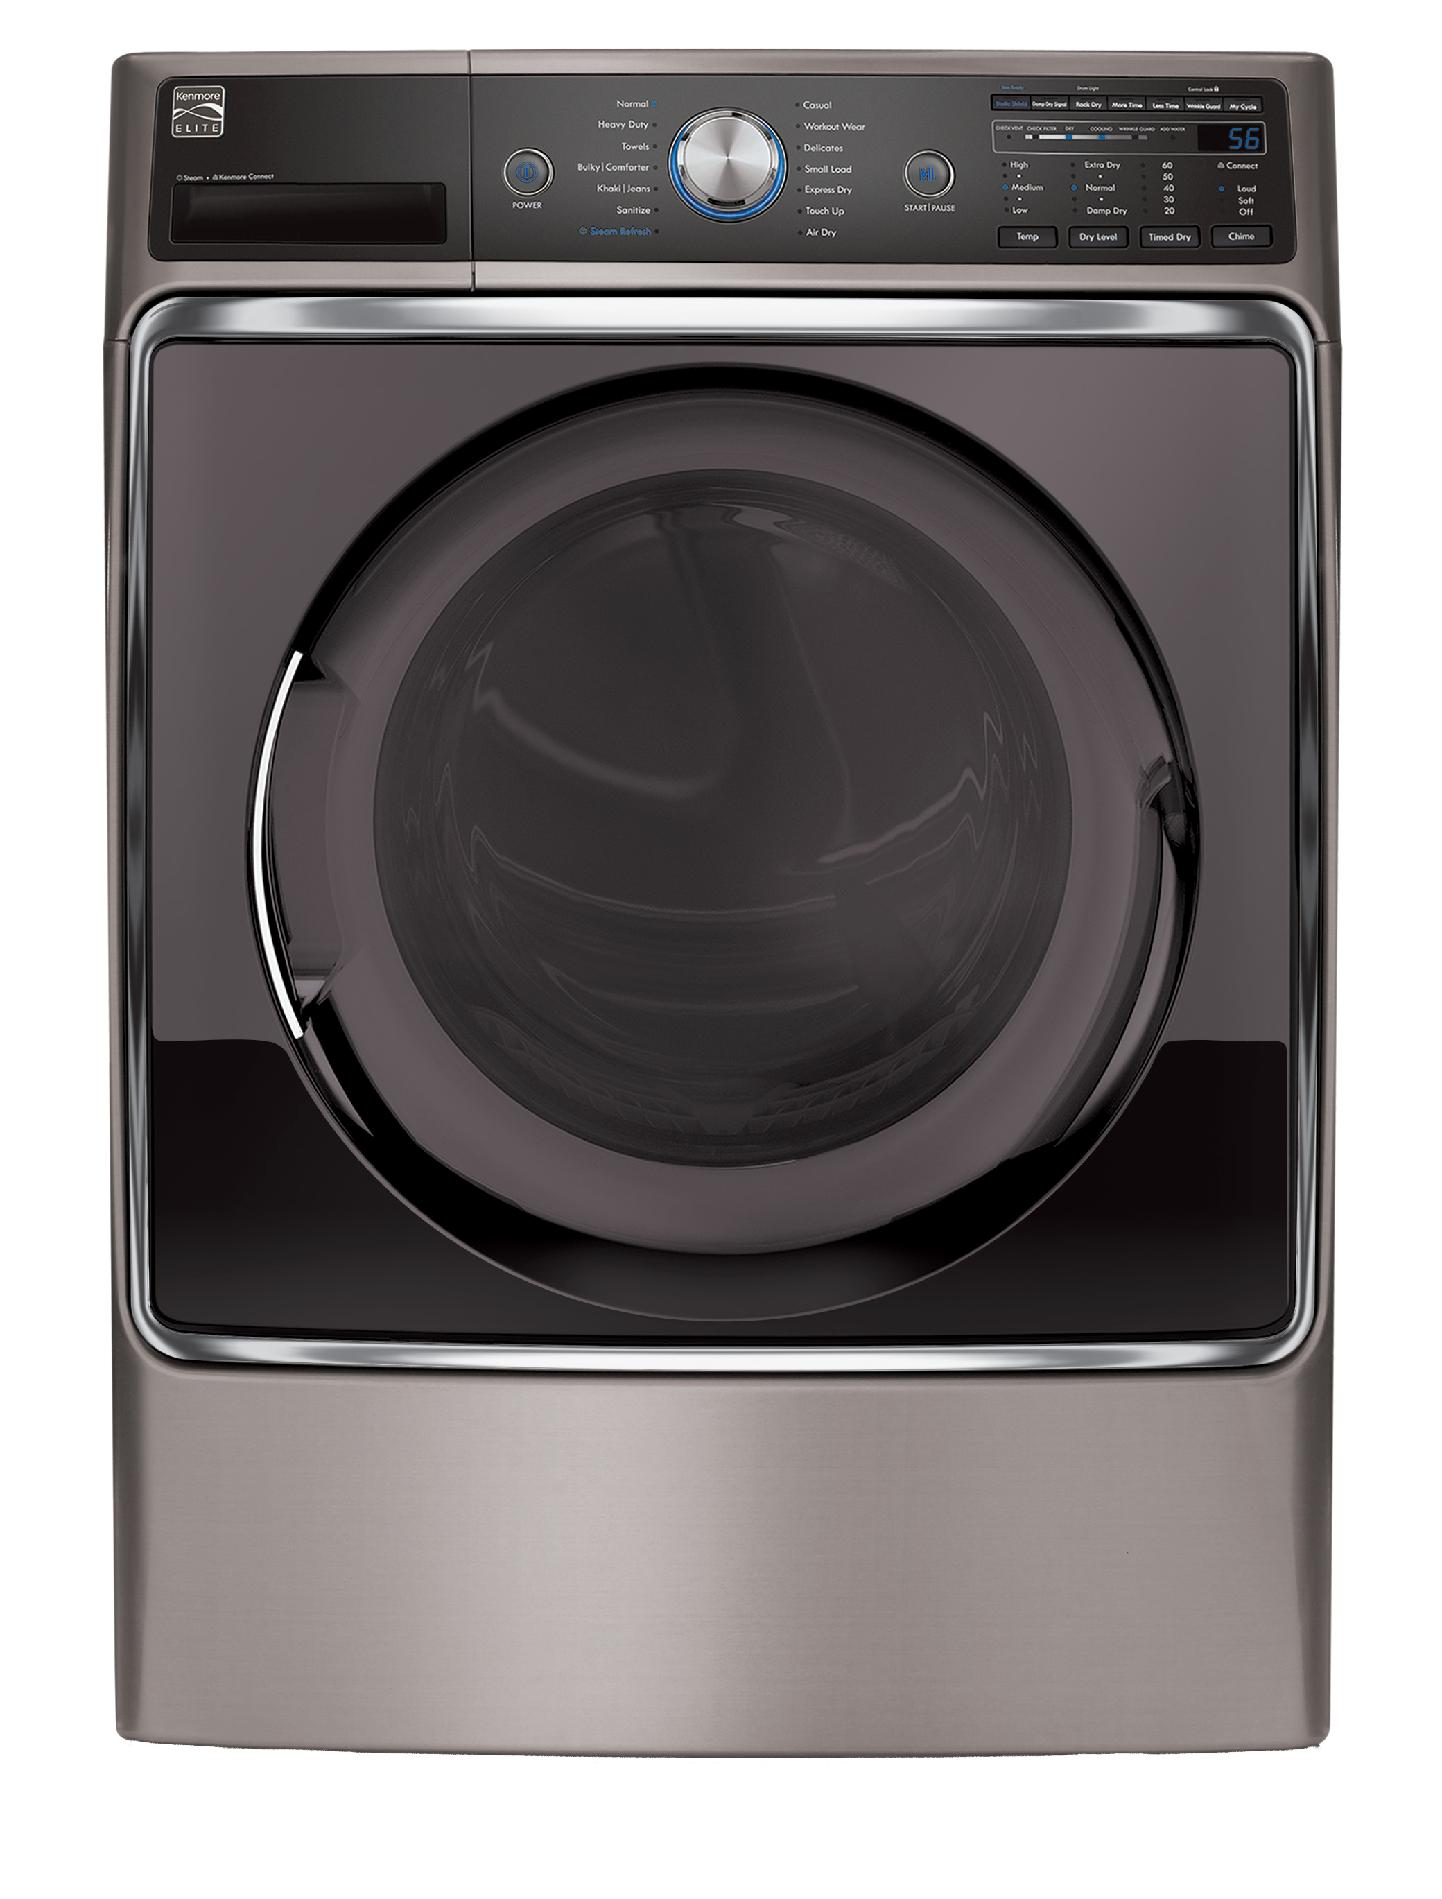 81073-9-0-cu-ft-Electric-Dryer-Metallic-Silver